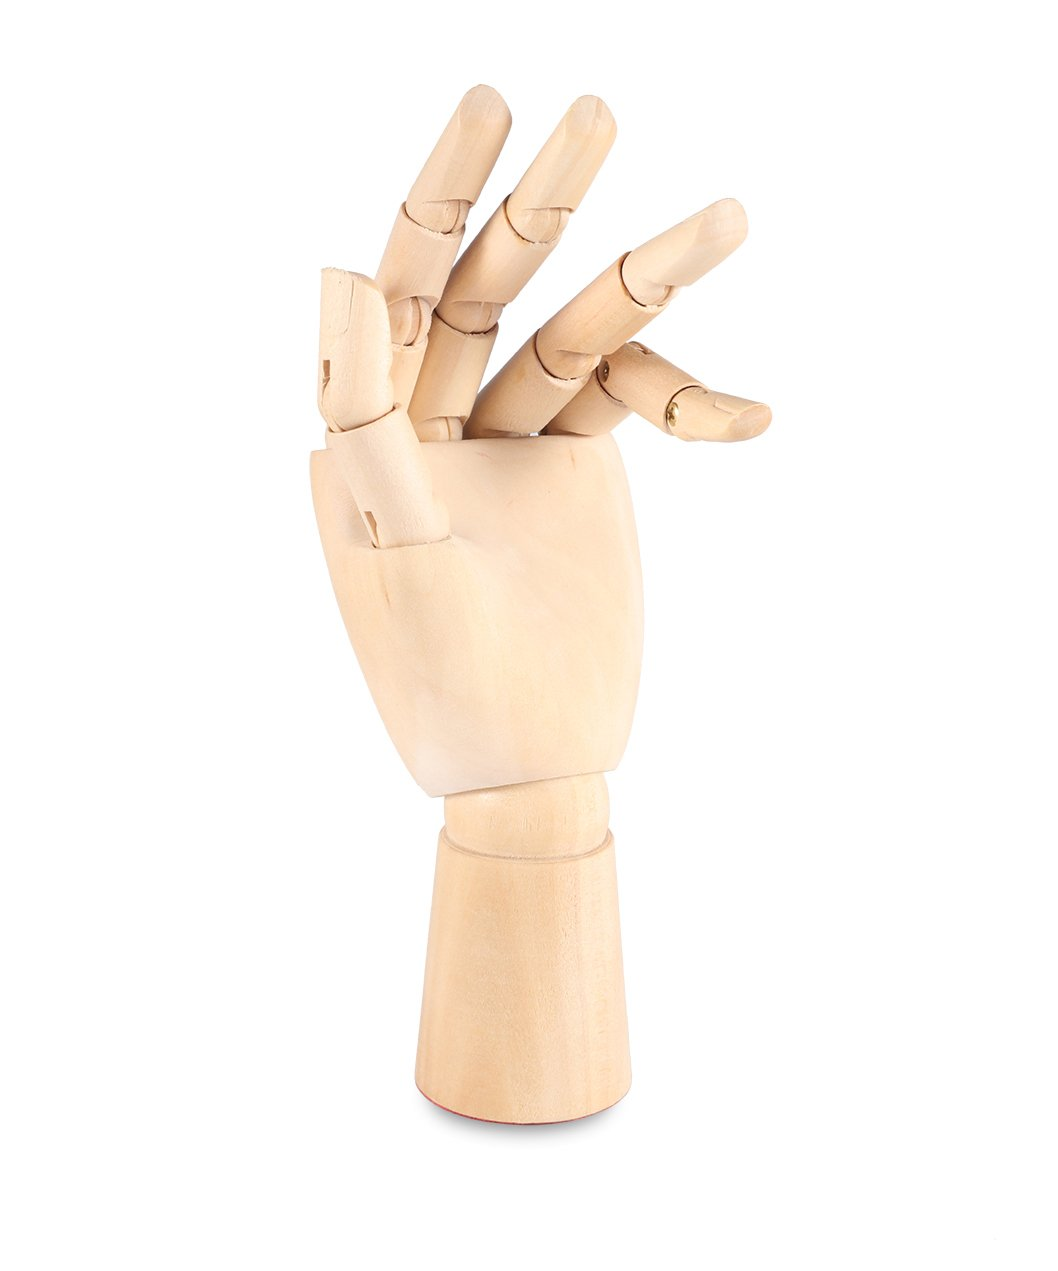 Art Mannequin Hand,Fashionclubs 10